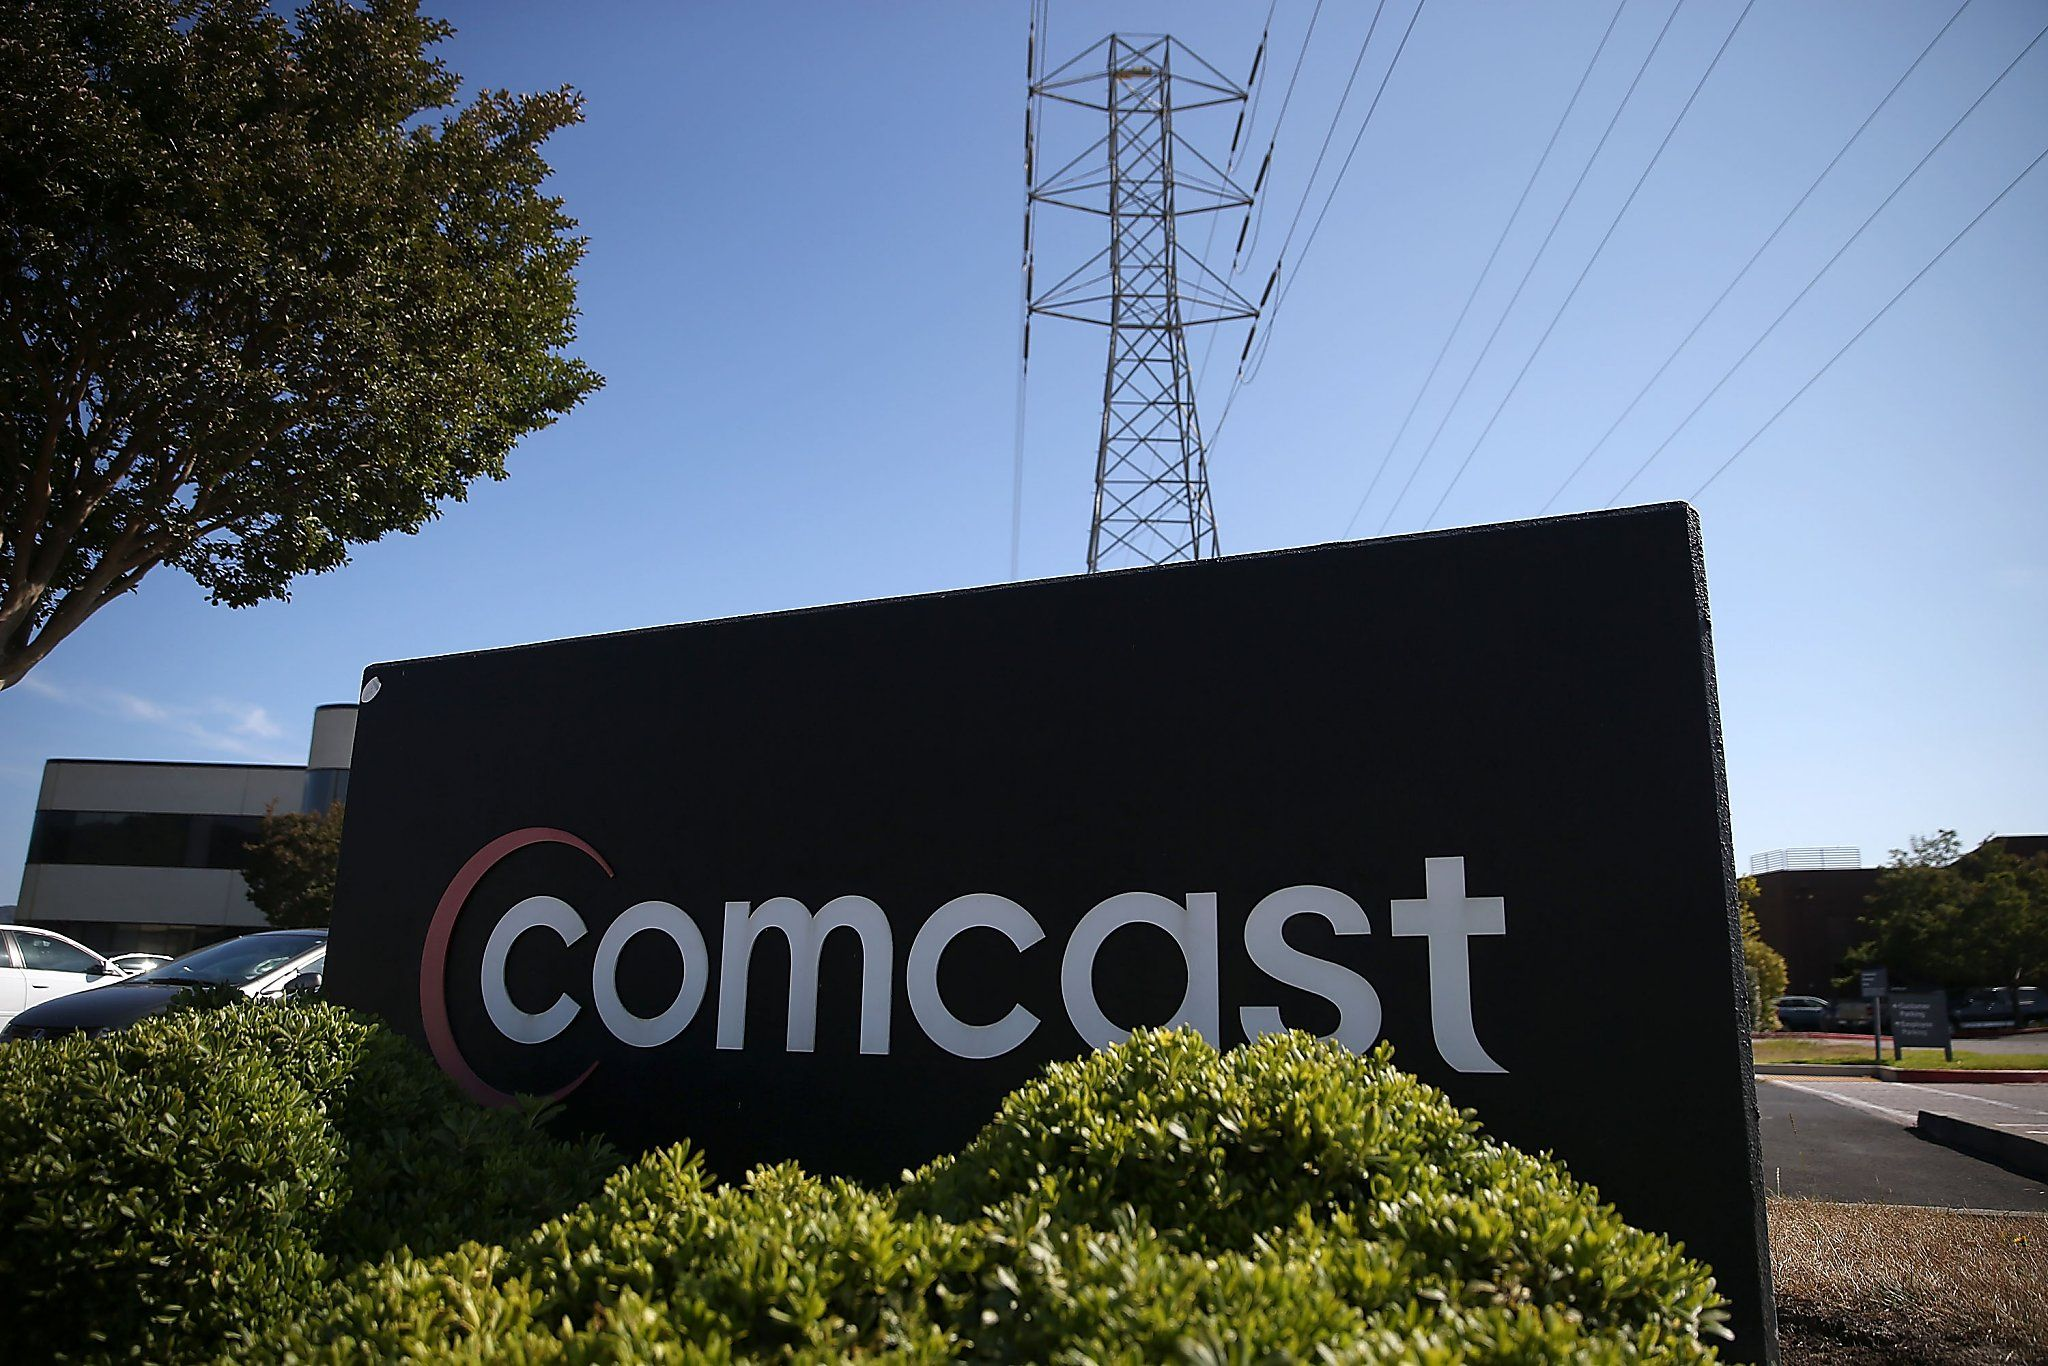 Comcast To Pay 26 Million For Illegally Dumping Old Equipment